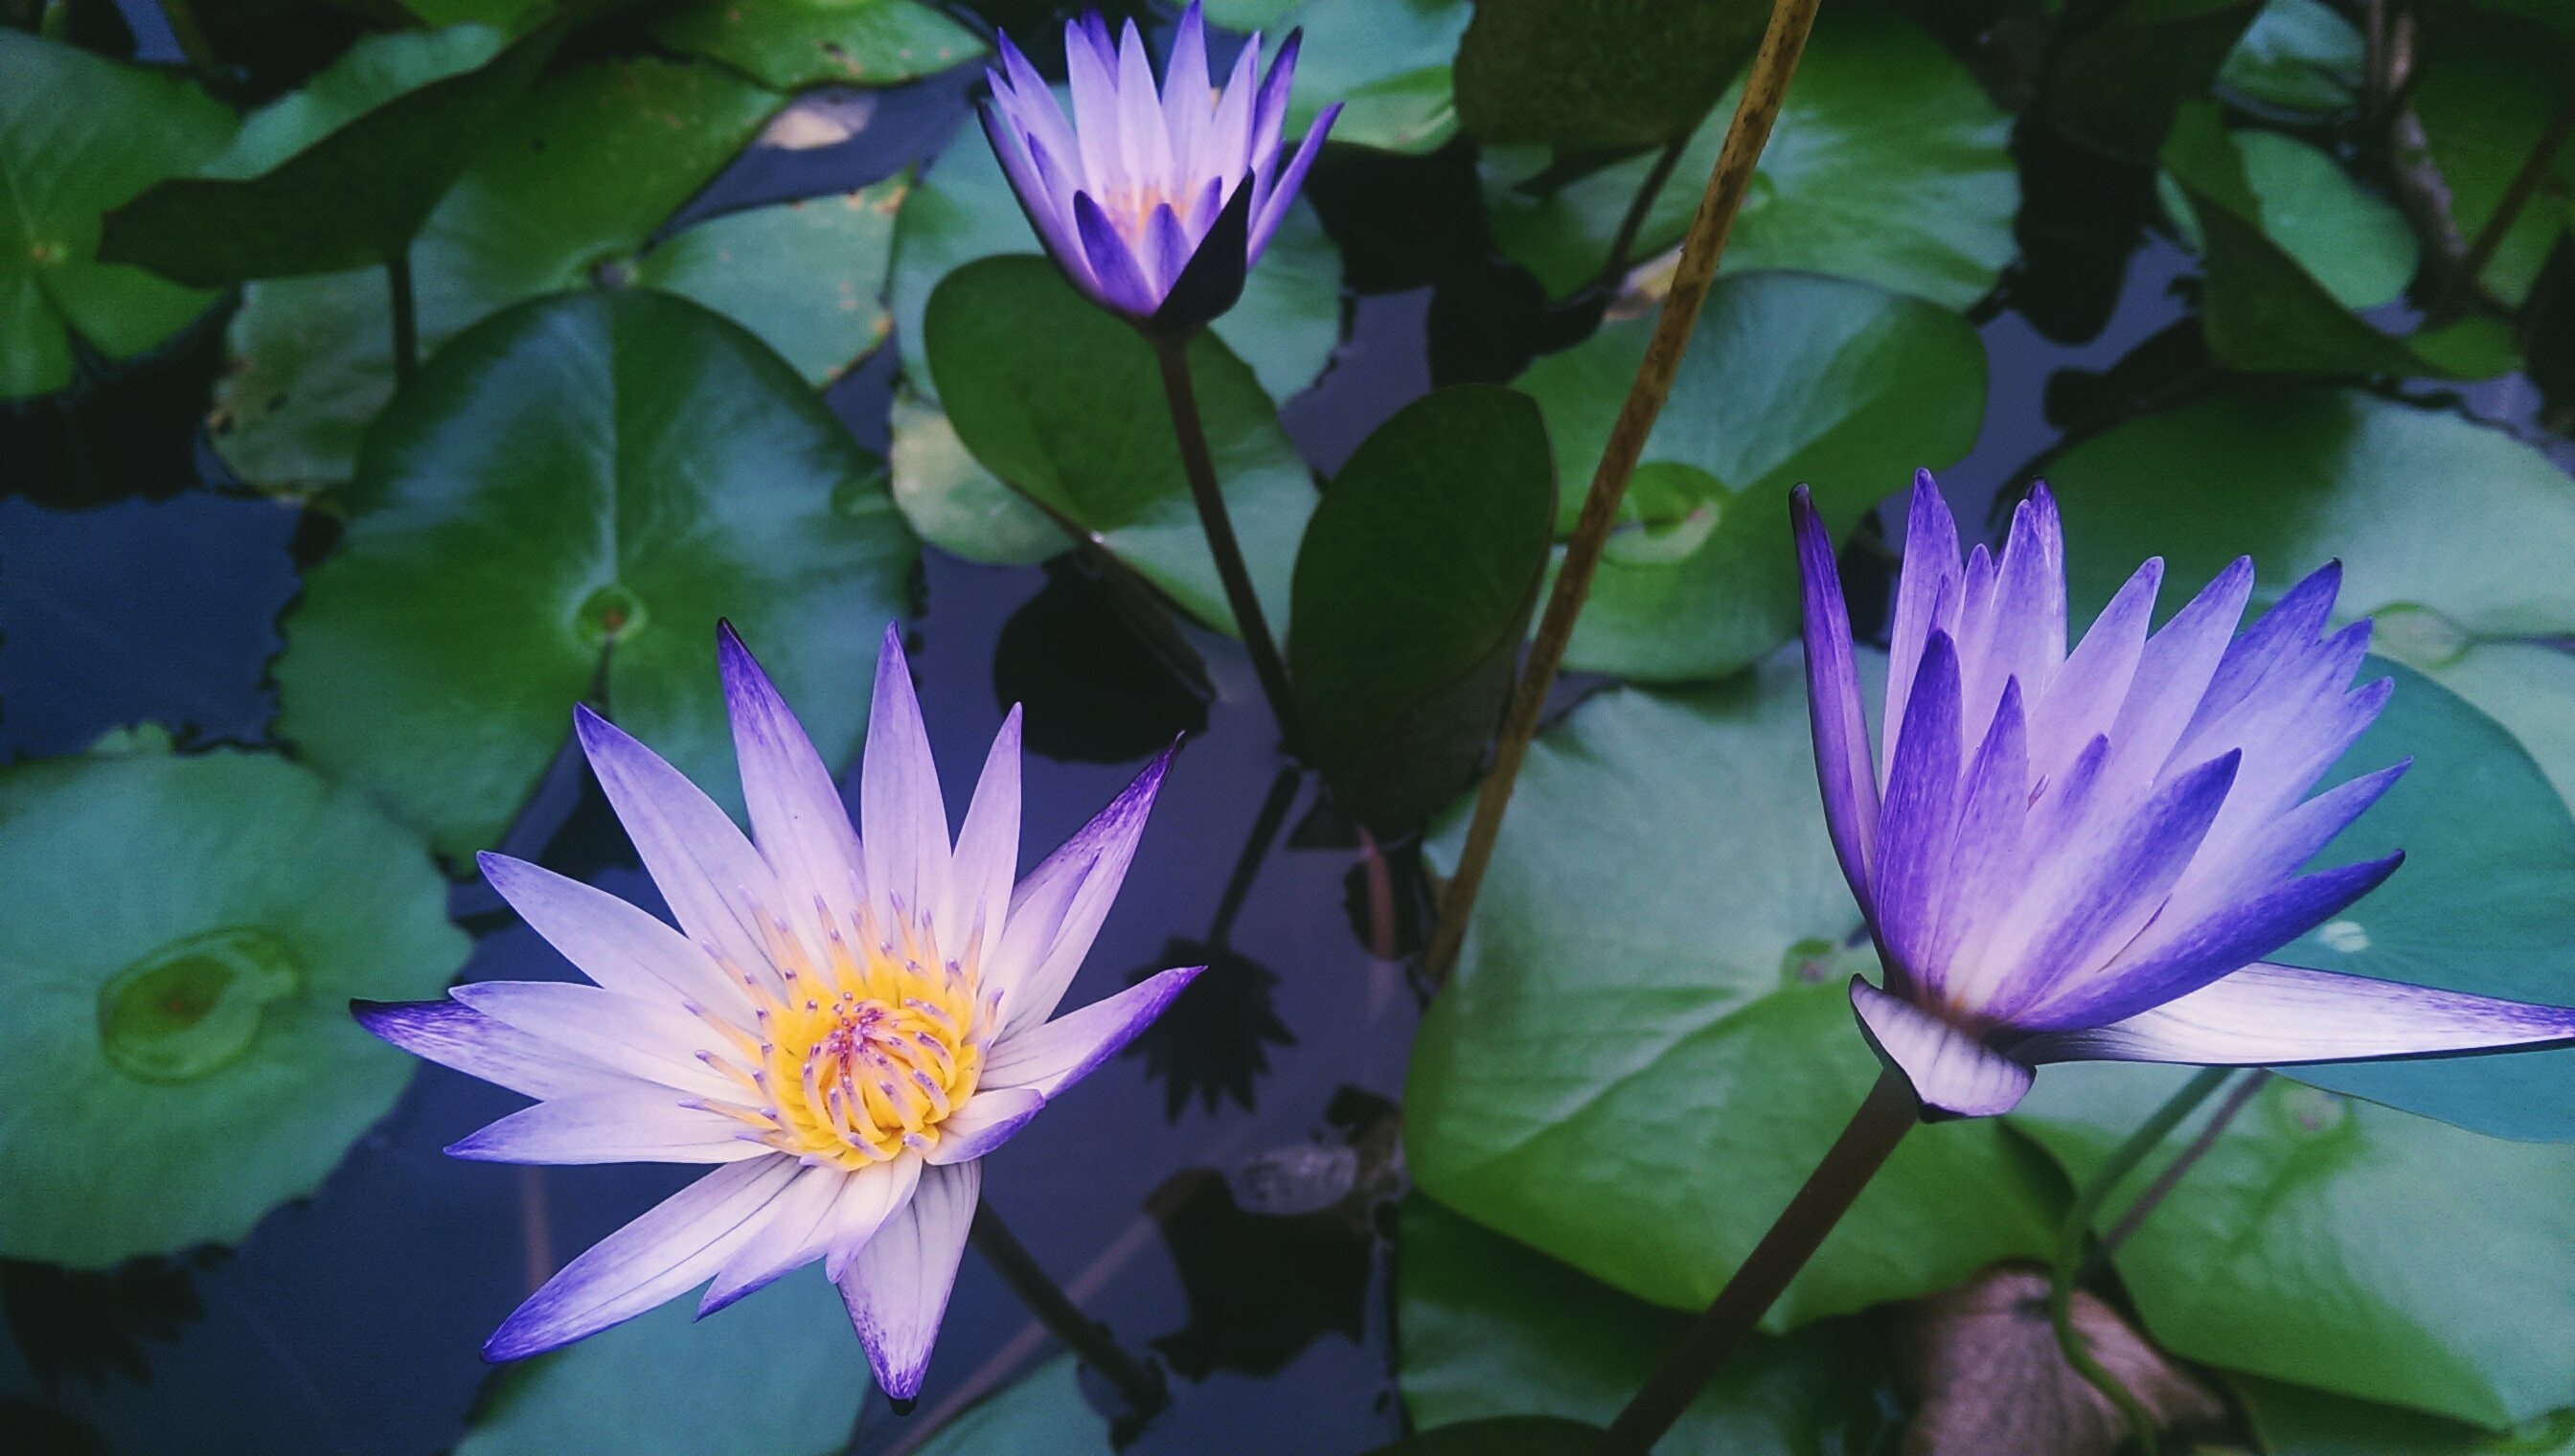 Overhead shot of violet water lilies on the surface of water